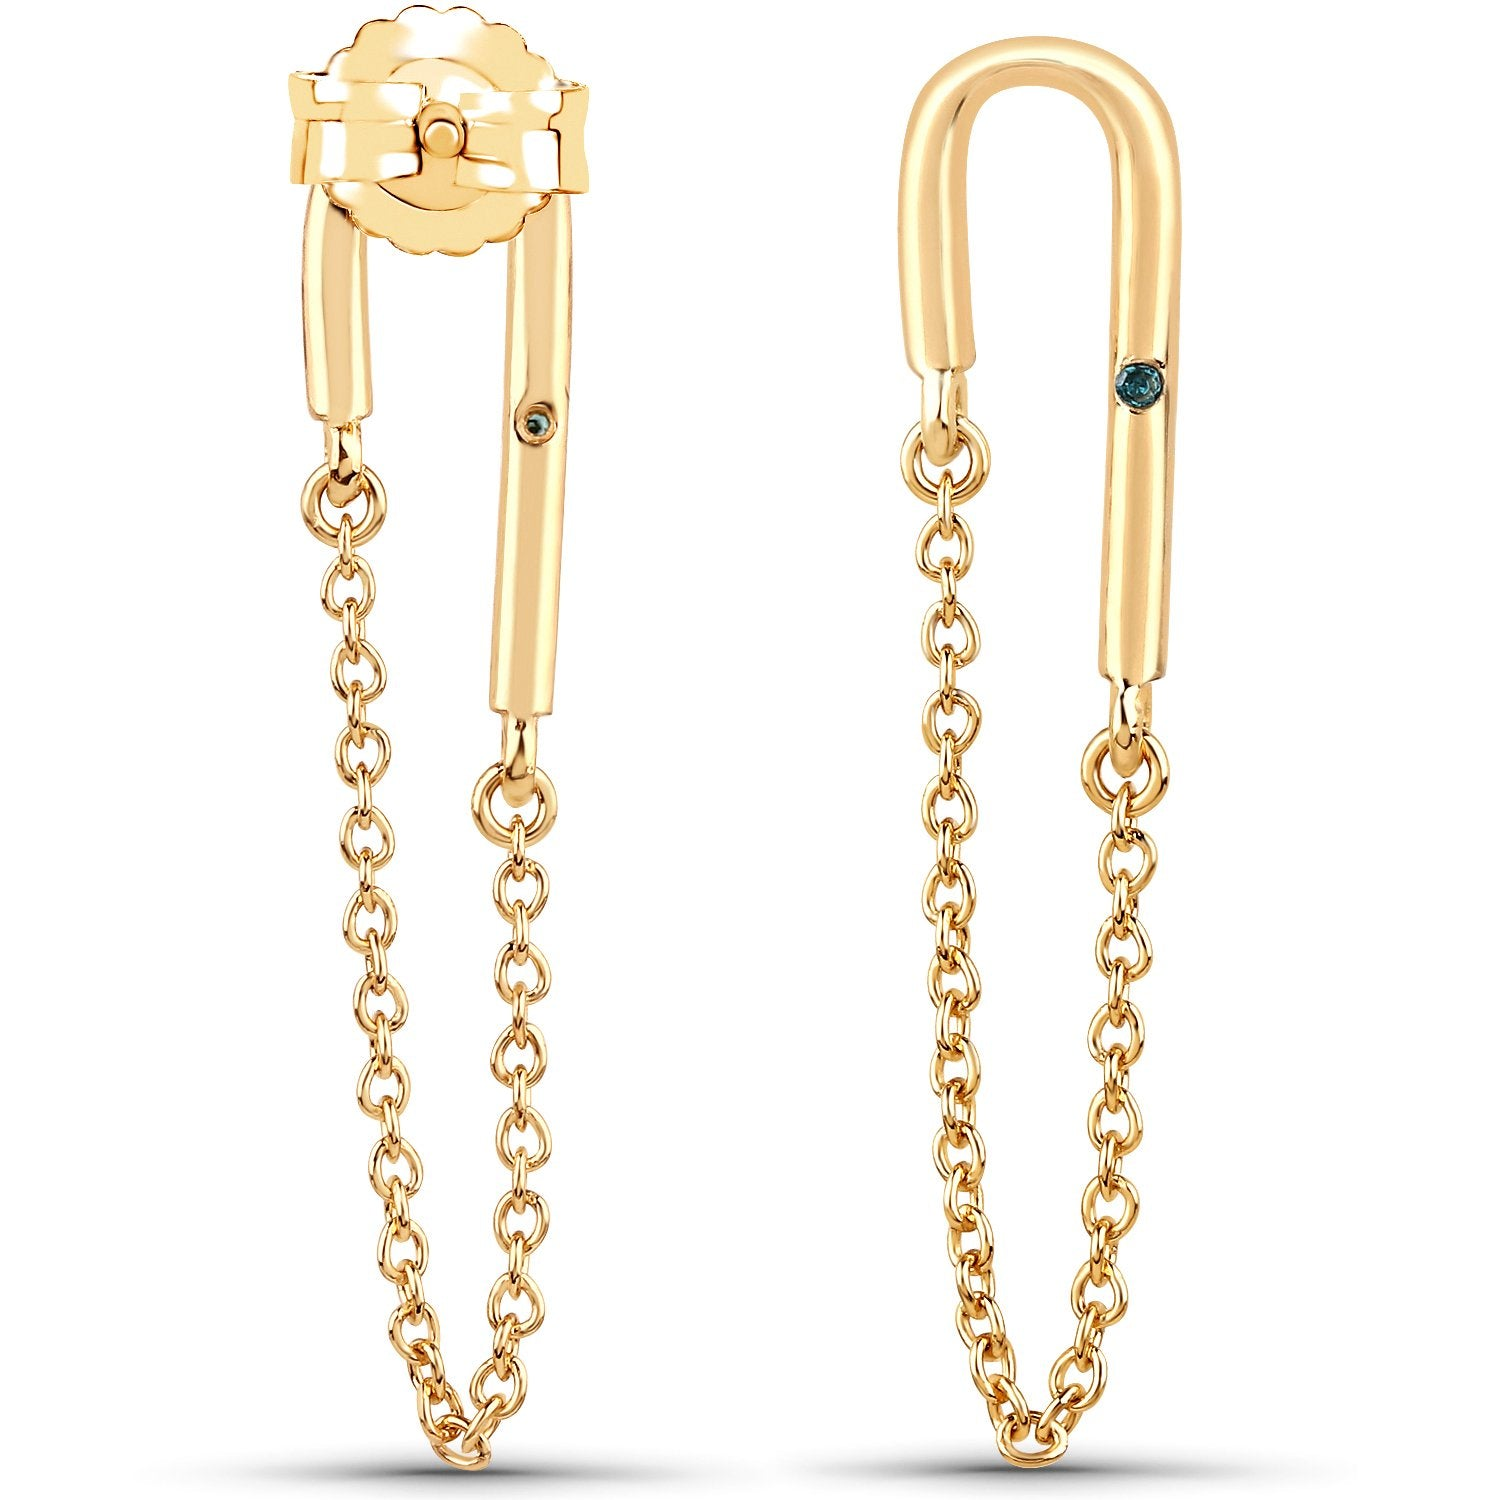 LoveHuang 0.01 Carats Genuine Blue Diamond (I-J, I2-I3) Dangling Chain Earrings Solid .925 Sterling Silver With 18KT Yellow Gold Plating